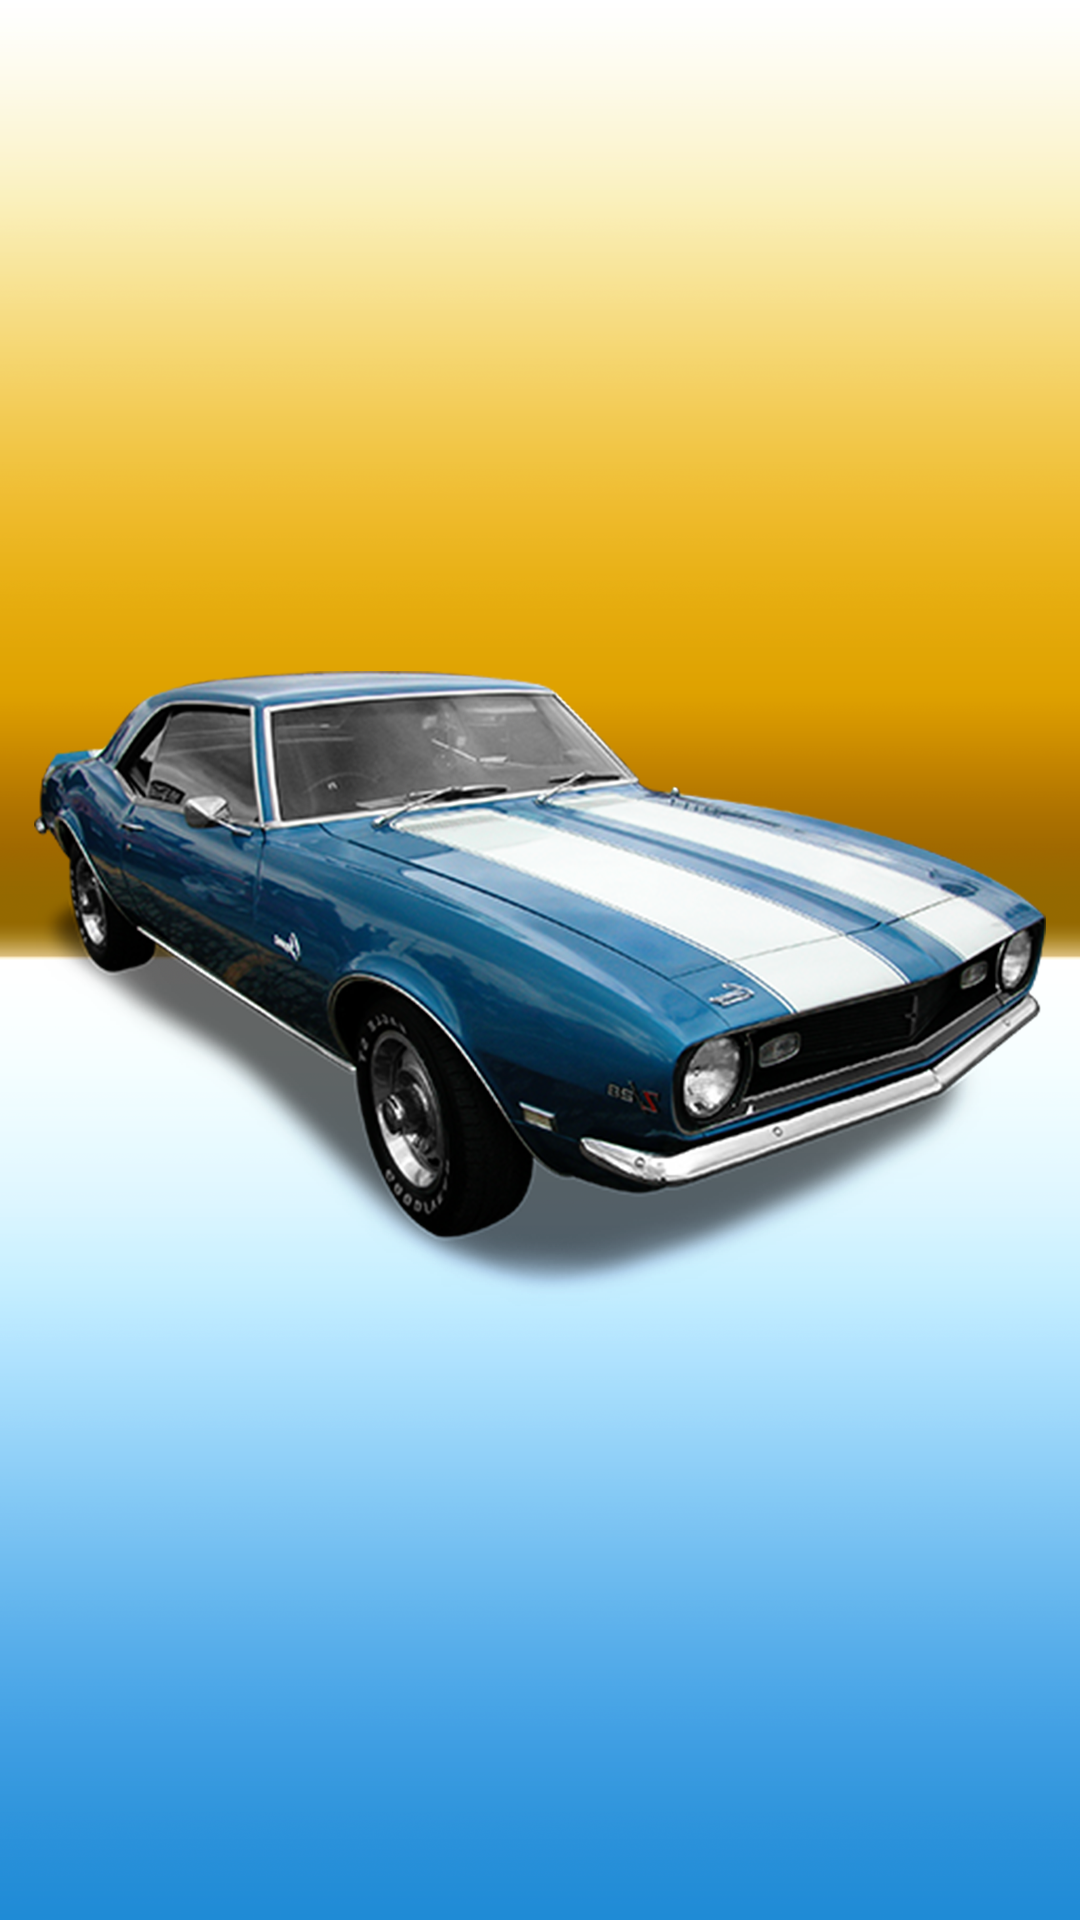 Ultra Hd Muscle Car Wallpaper For Your Mobile Phone 0180